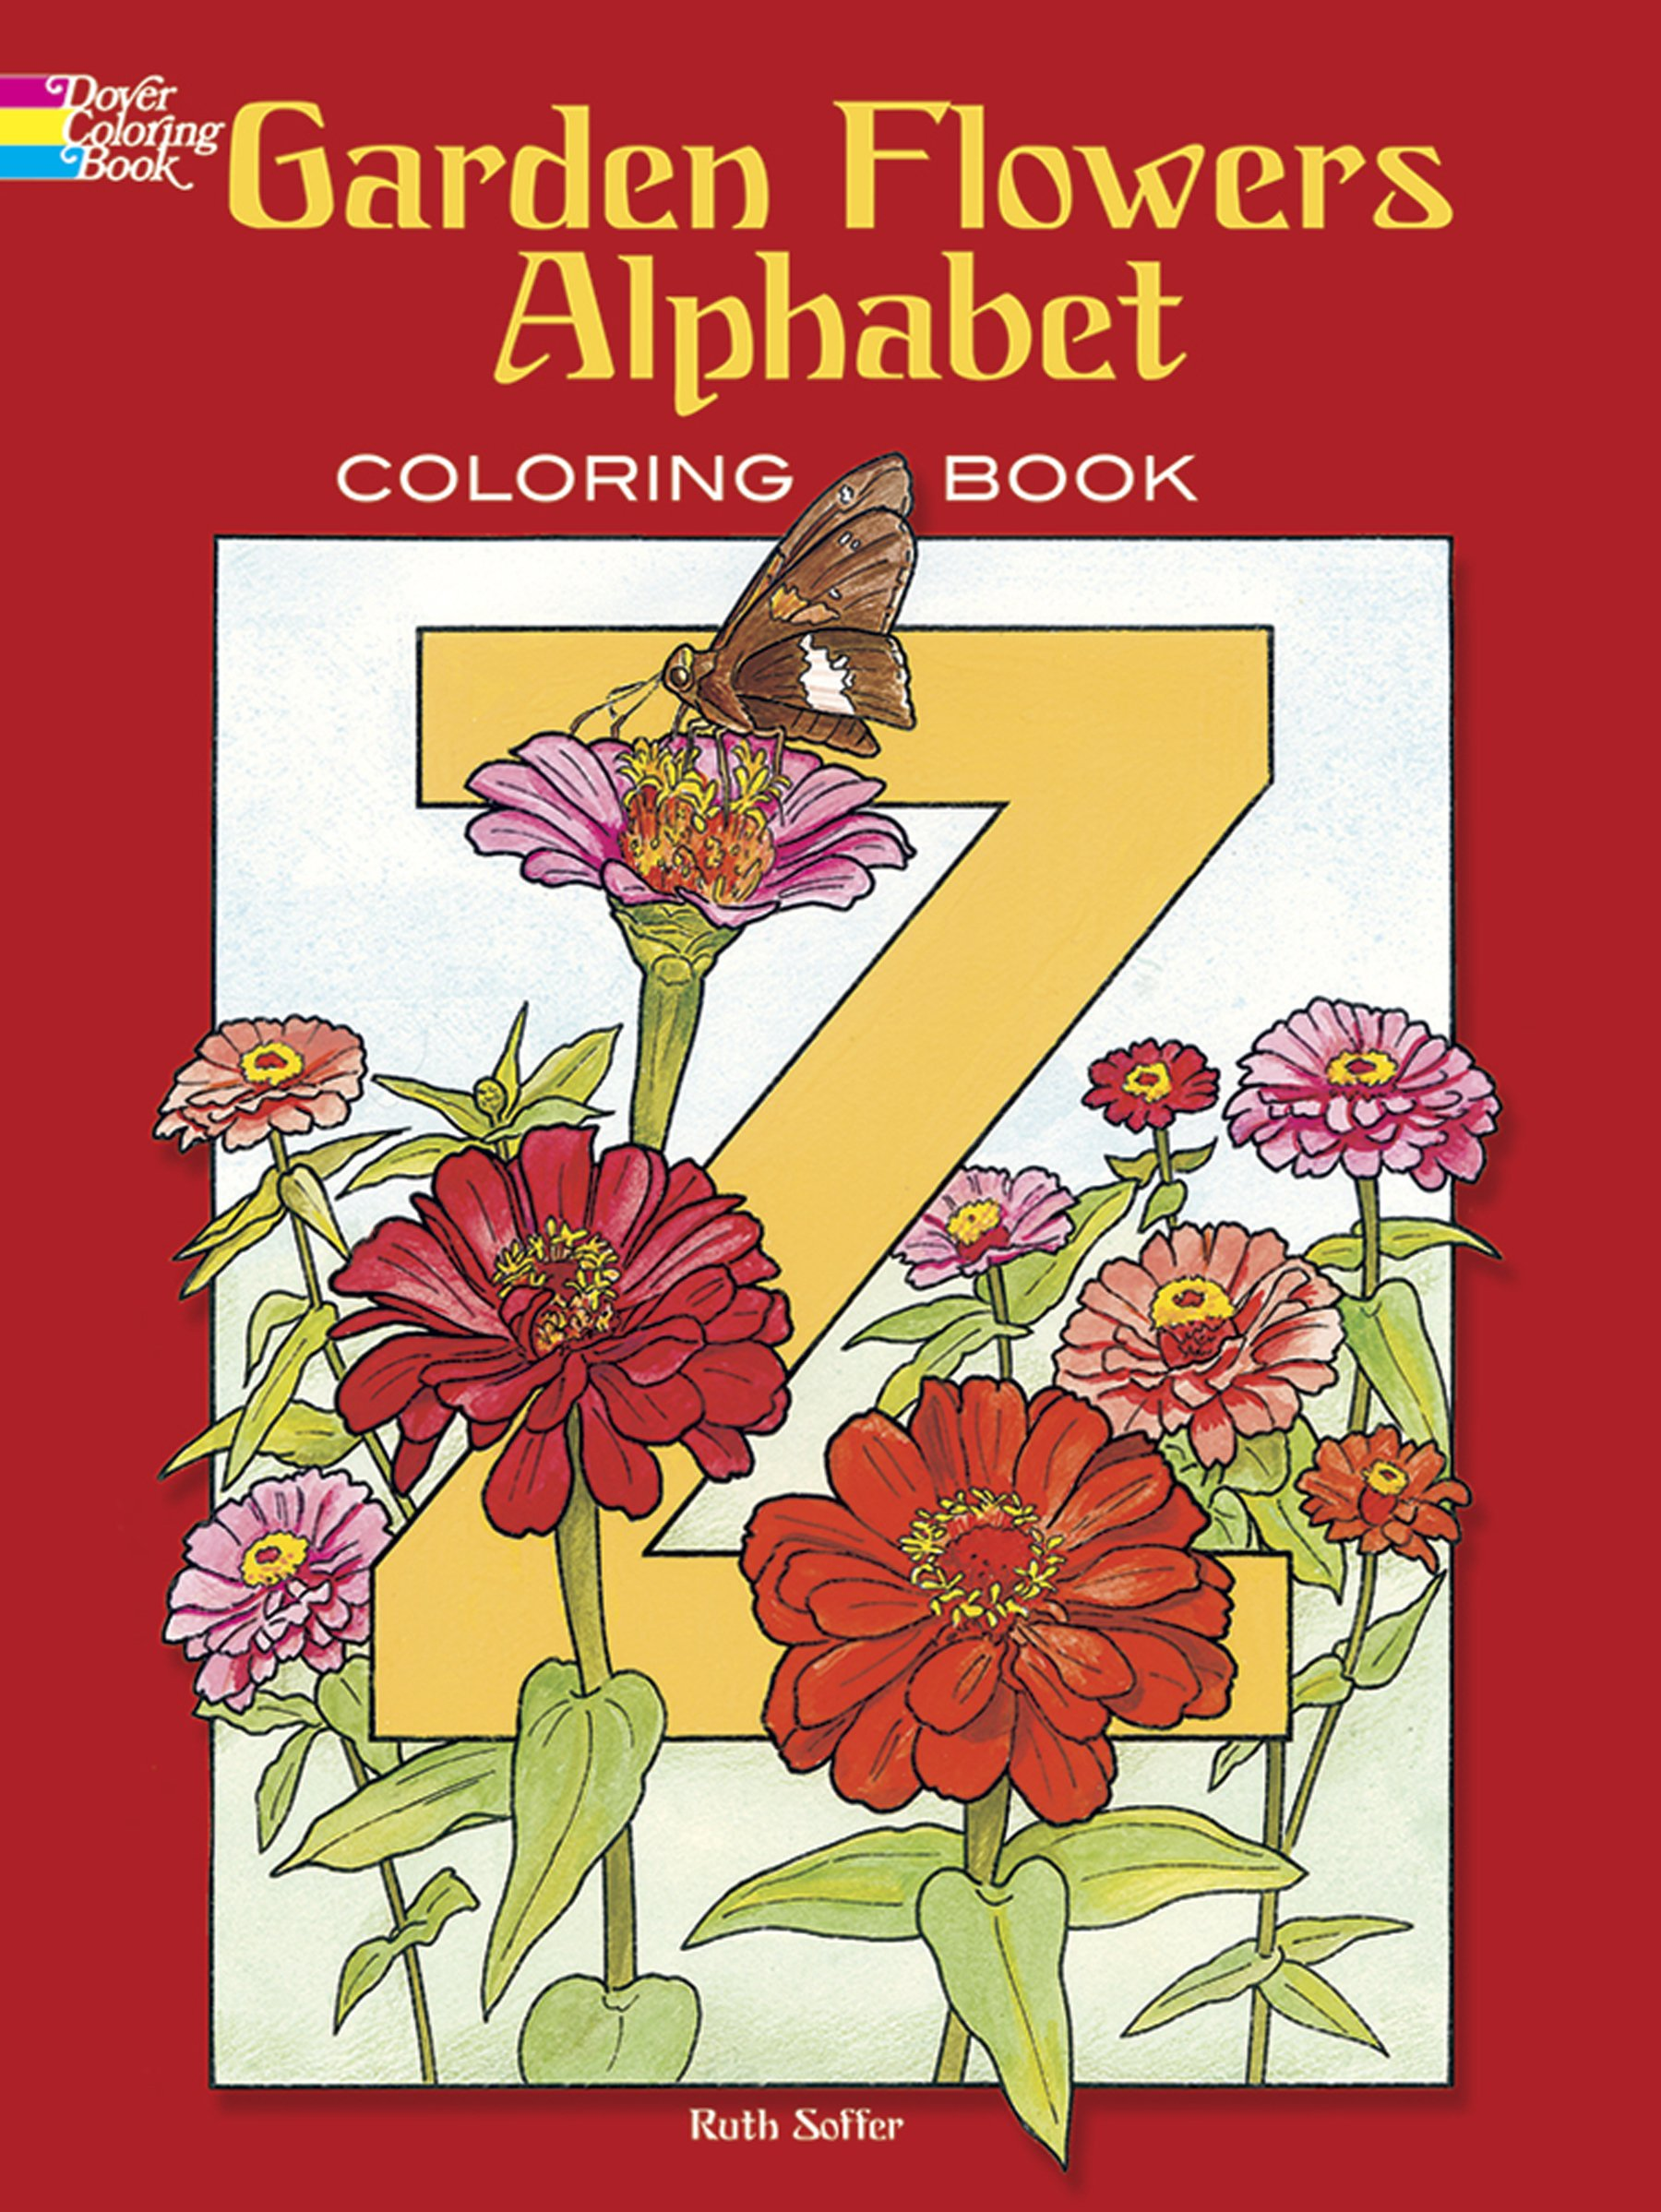 Garden Flowers Alphabet Coloring Book (Dover Design Coloring Books ...